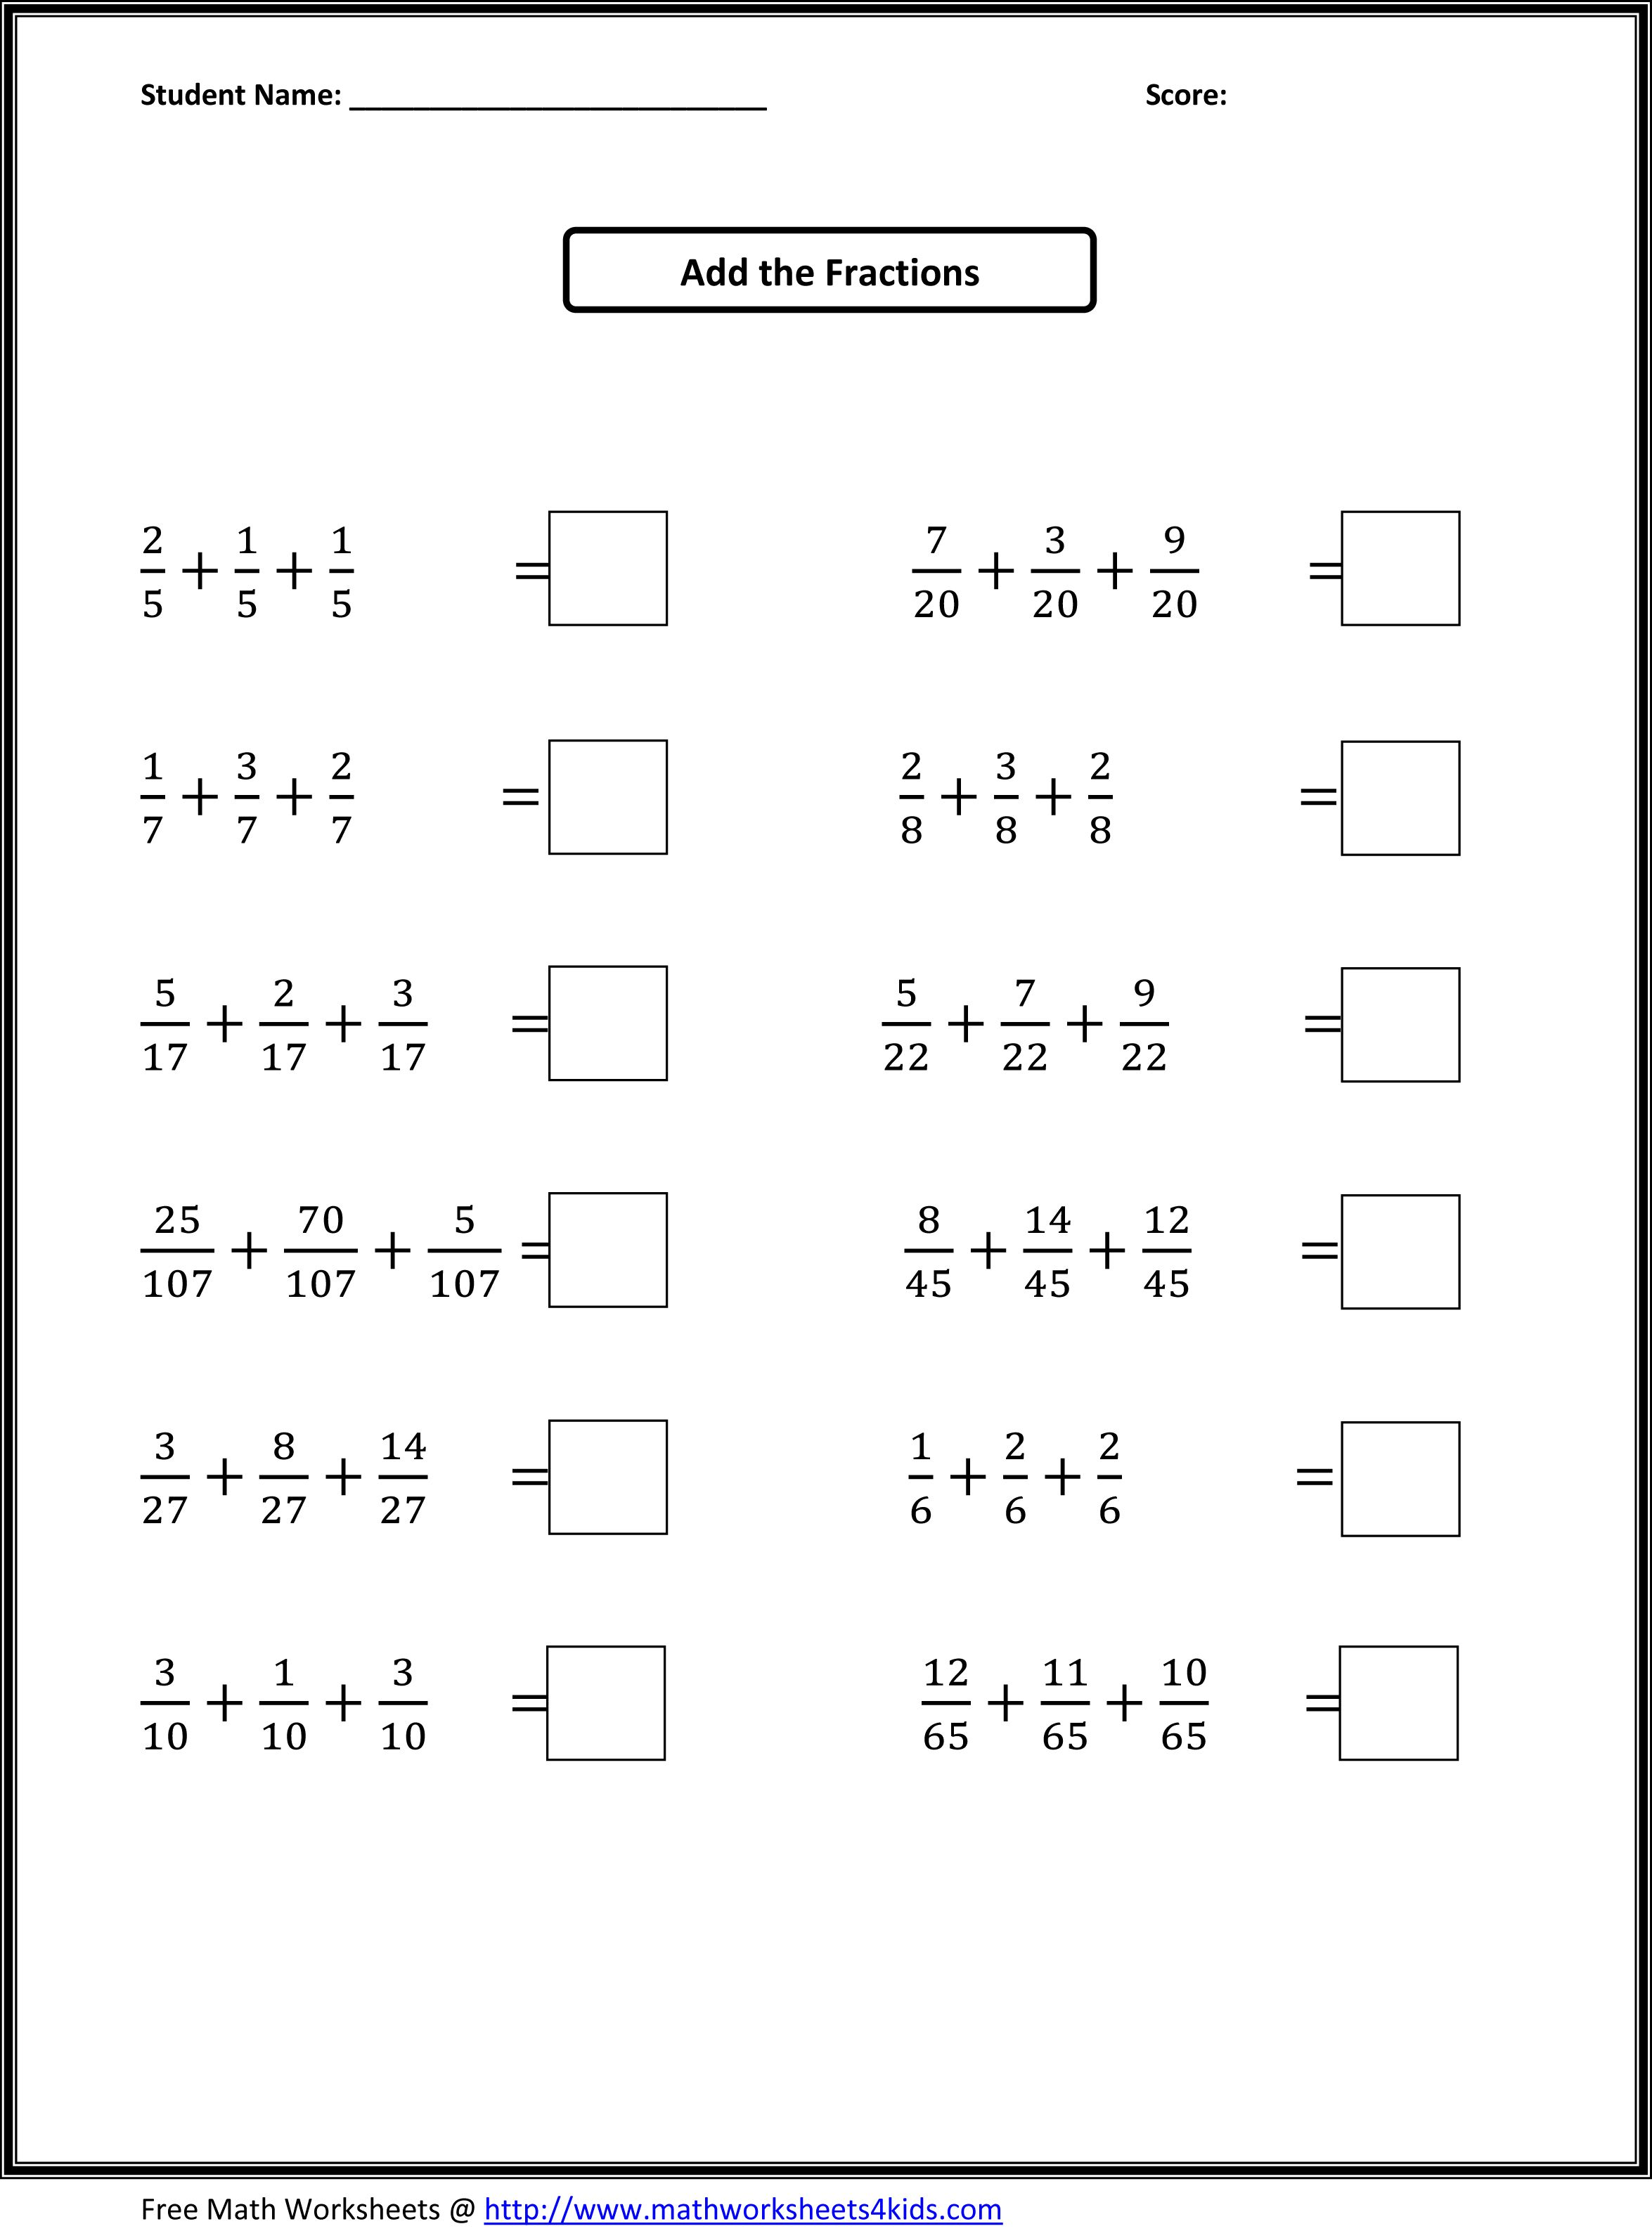 math worksheet : fractions easy work and math worksheets on pinterest : Grade 6 Maths Worksheets Printable